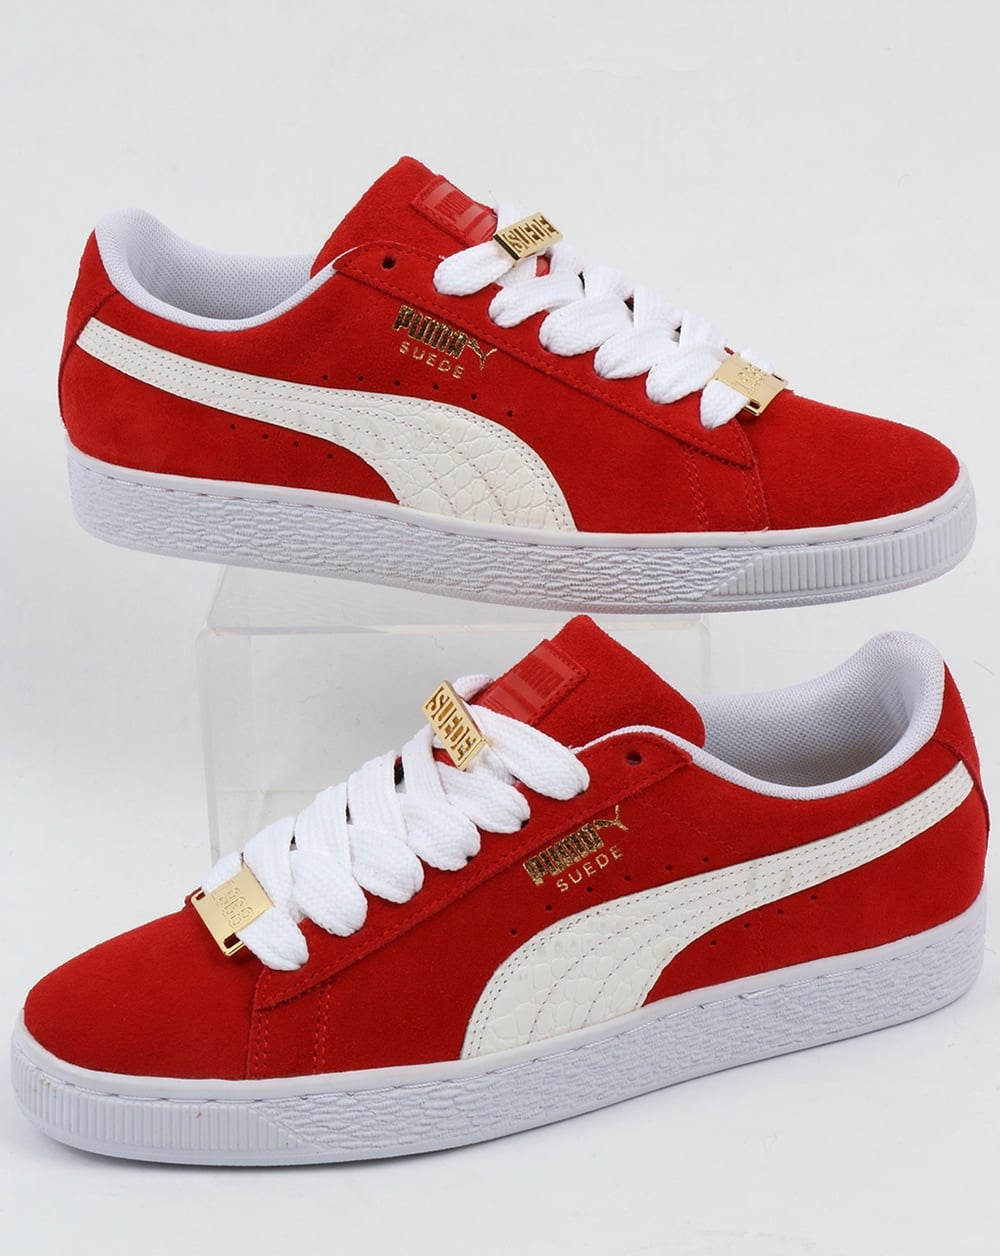 uk availability f573c 7e875 Puma Suede Classic Bboy Fabulous Trainers Red/white